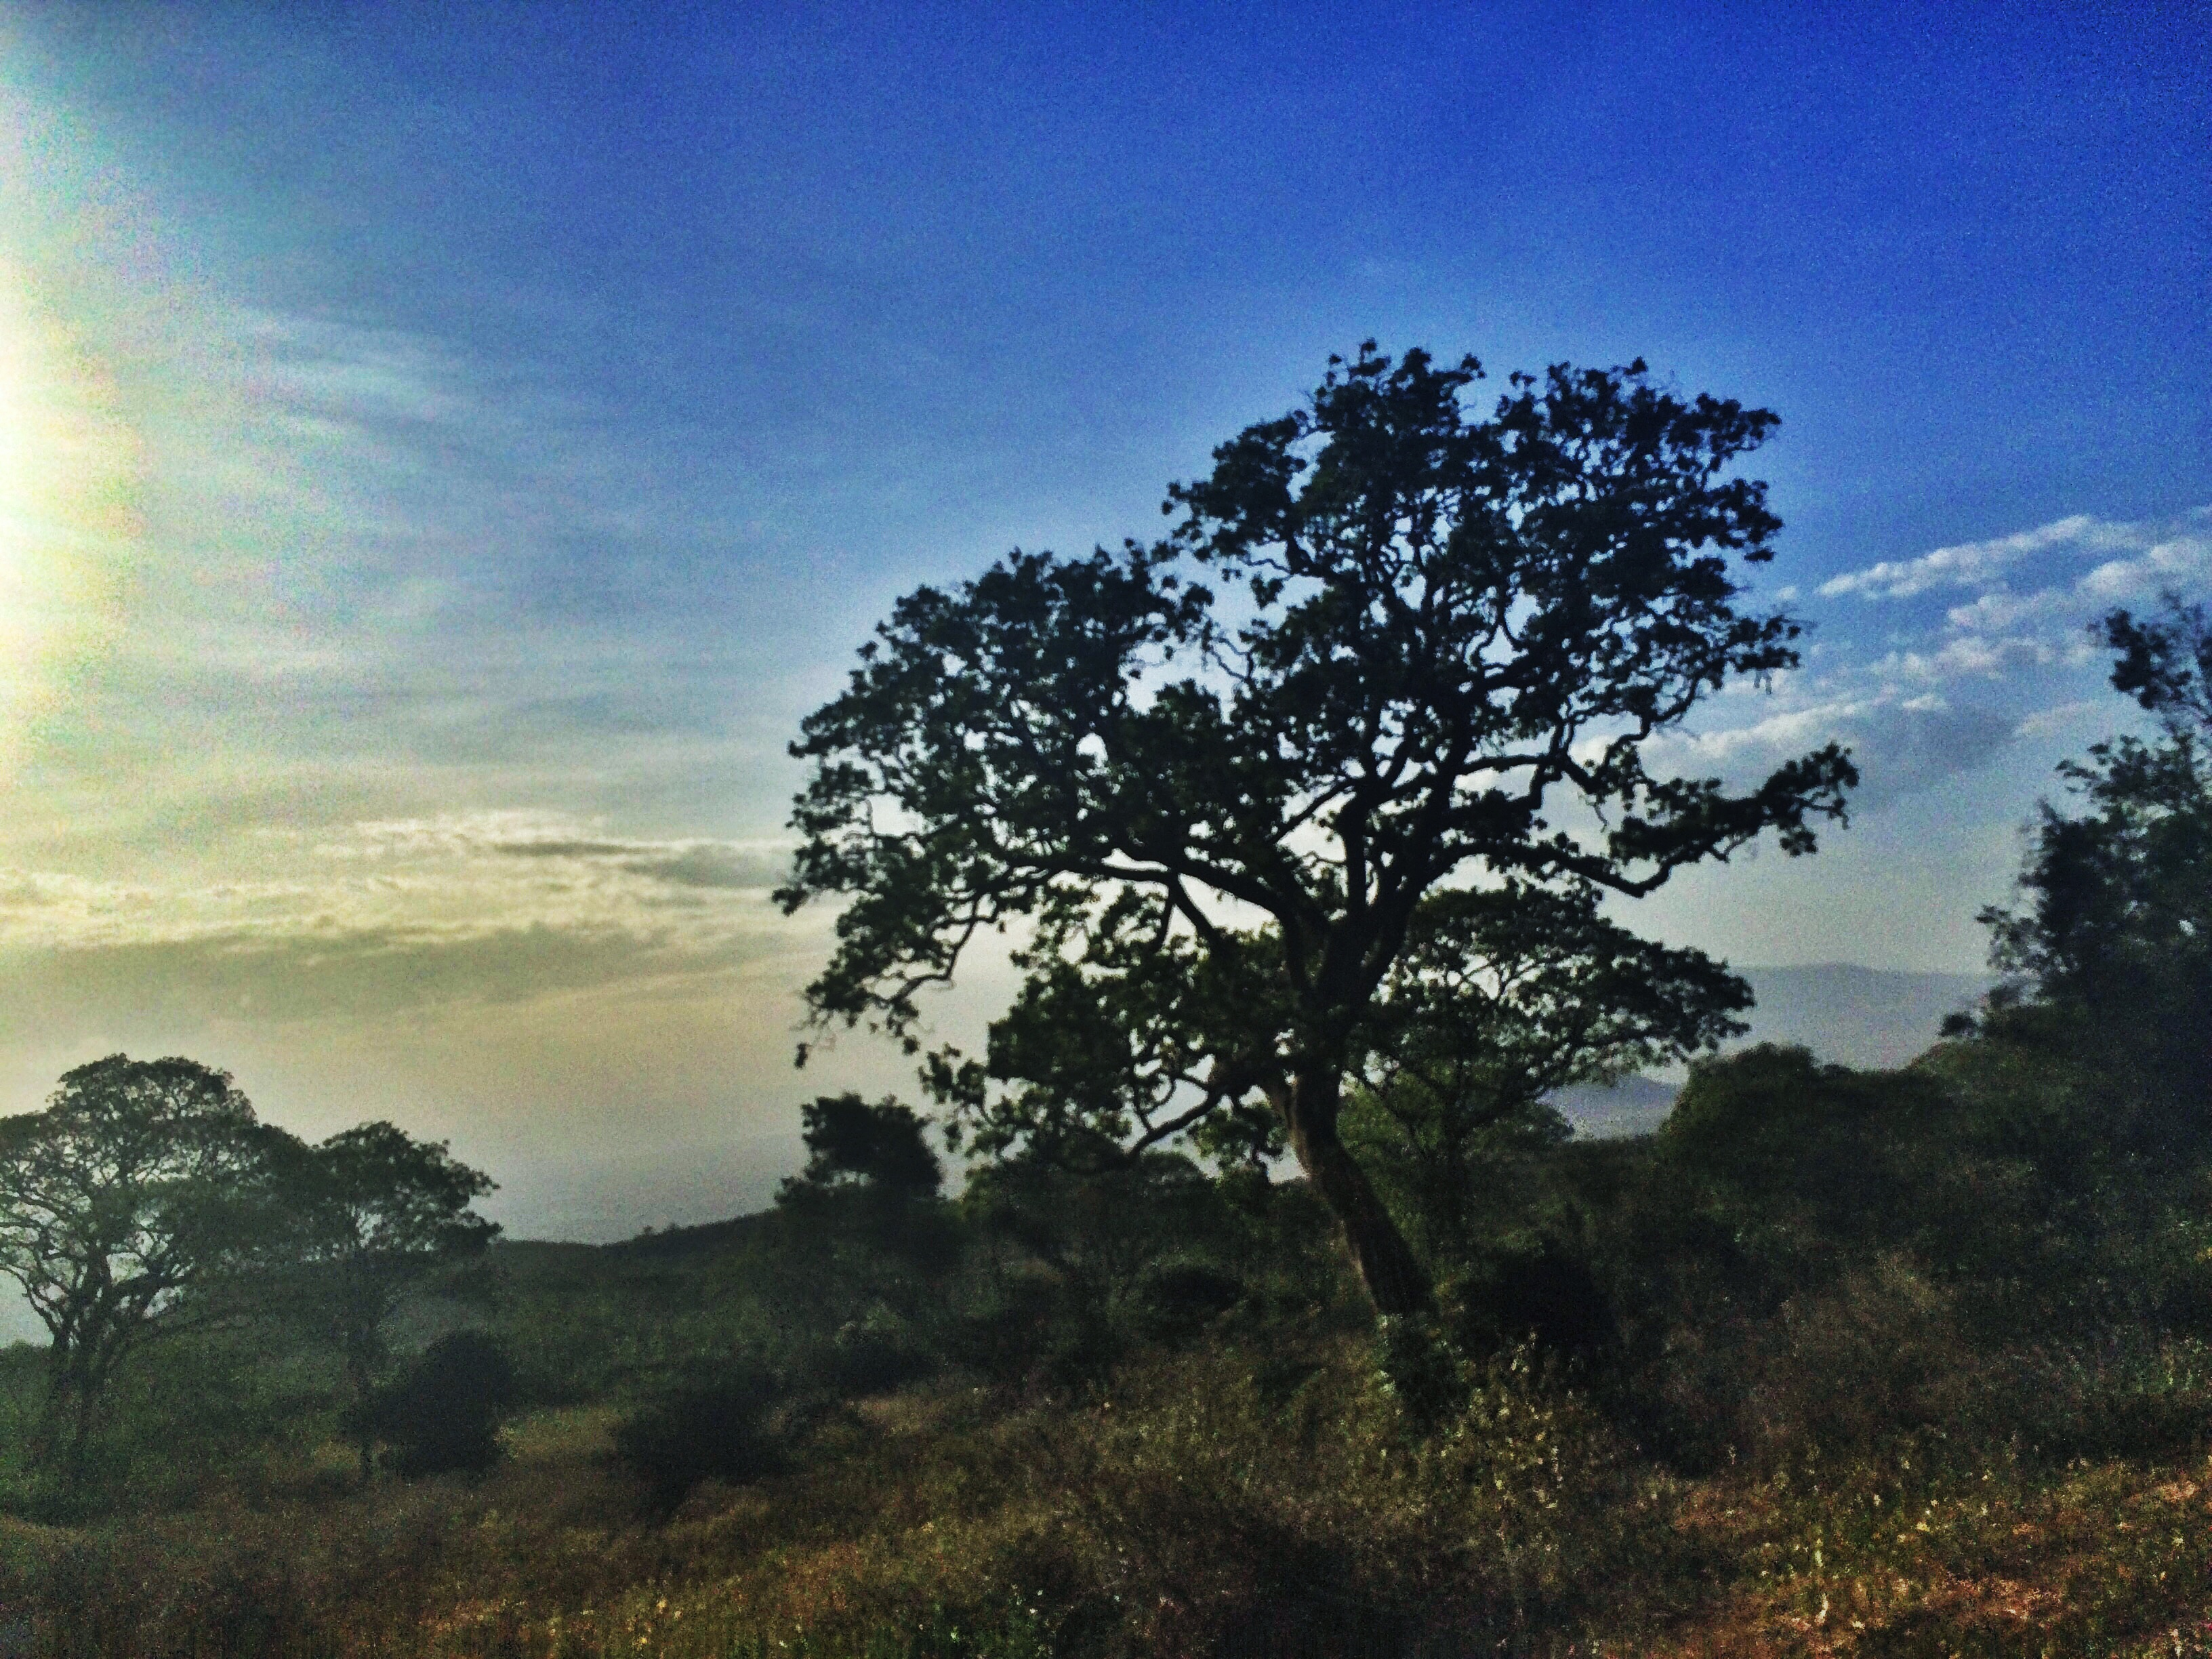 Tree over the Great Rift Valley, Kenya